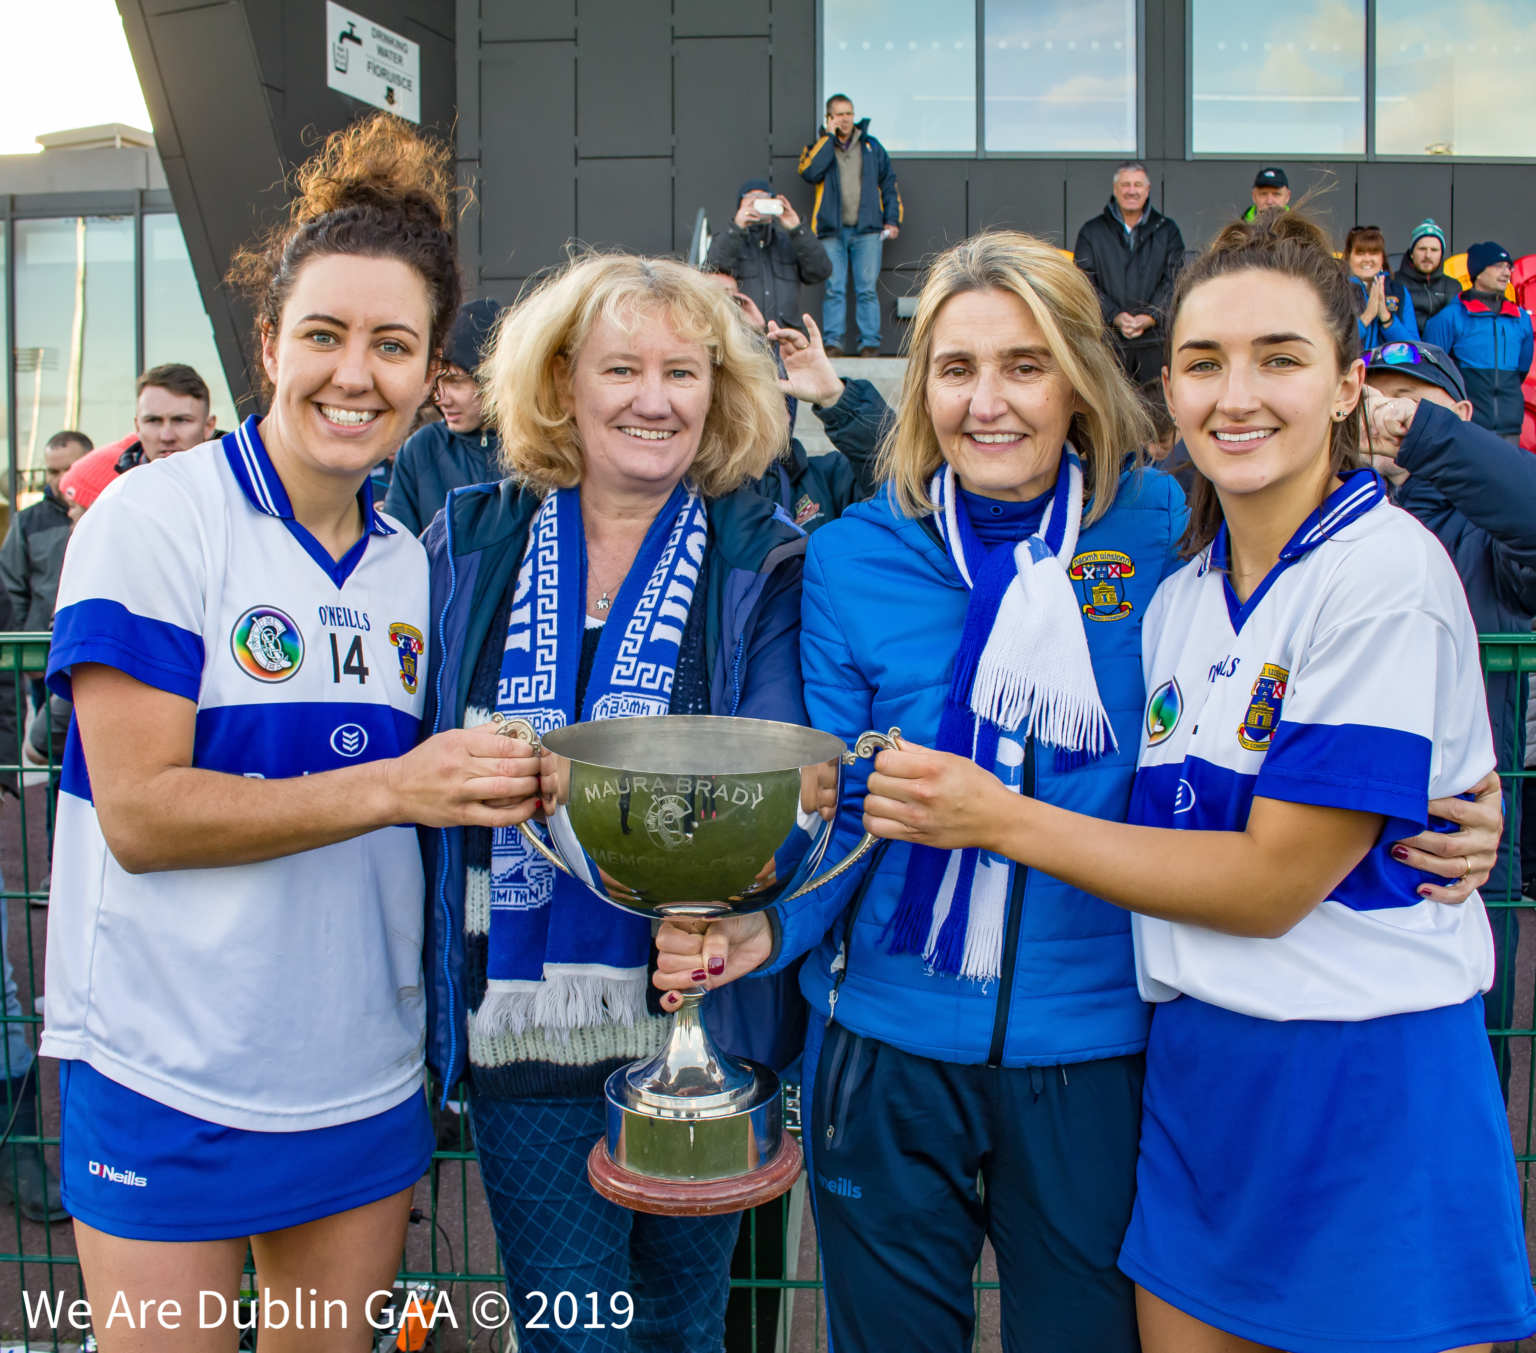 The St Vincents Co-Captains and their mother's with the We Are Dublin GAA/Dublin Camogie Senior 1 Title Trophy